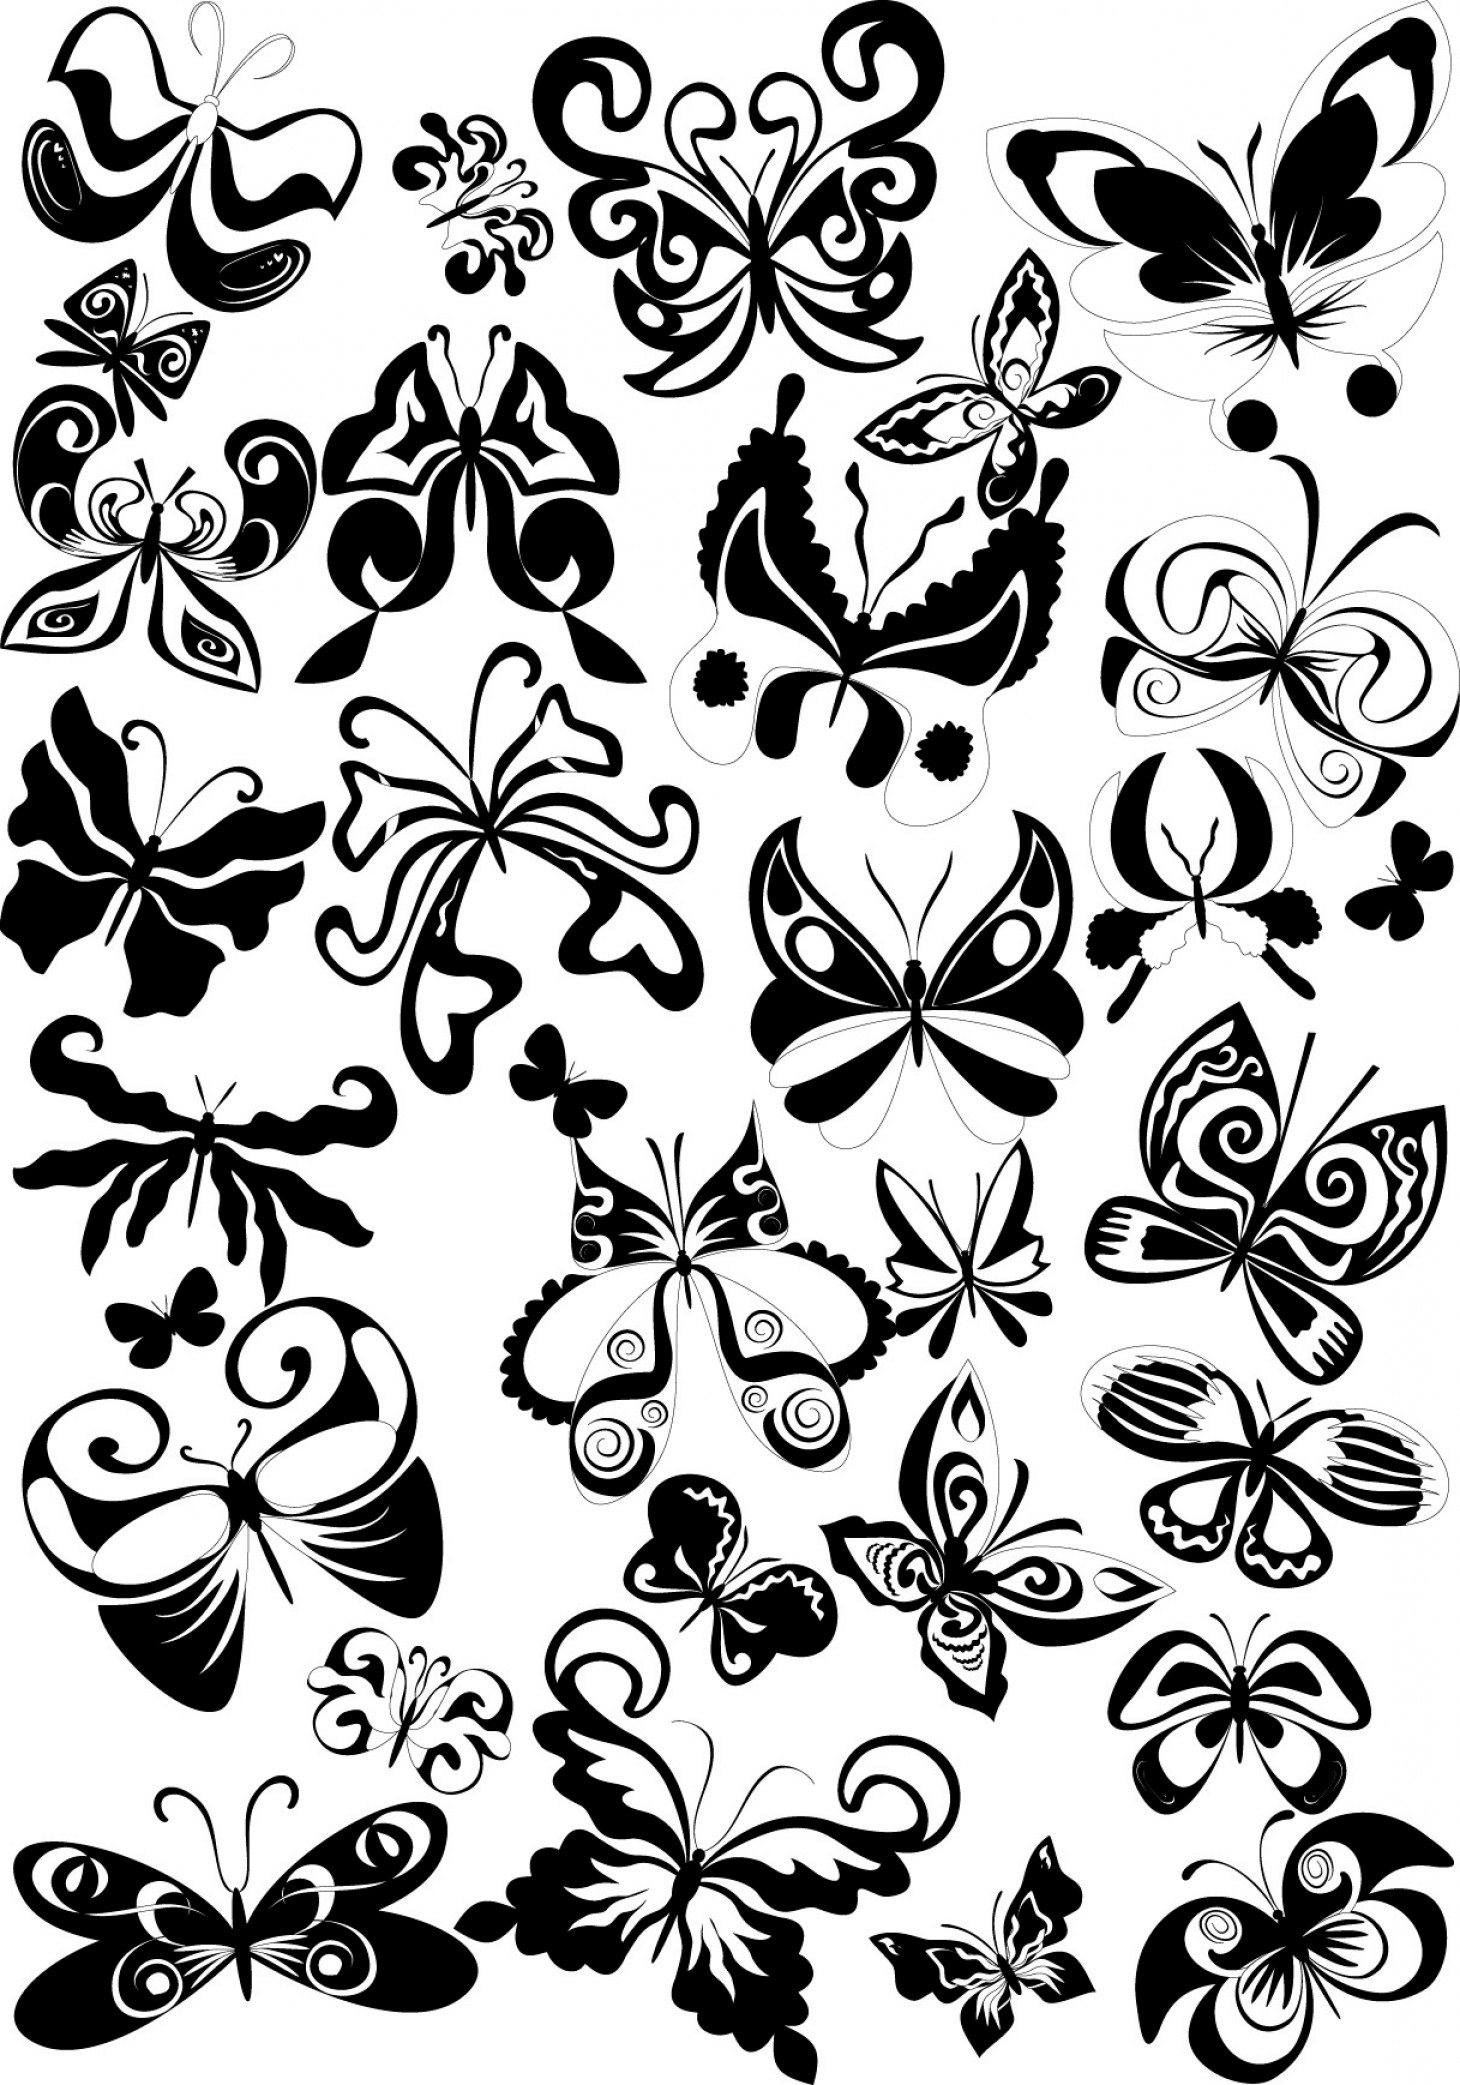 Butter Fly And Flower Vector Black And White: Black And White Butterfly Element Vector